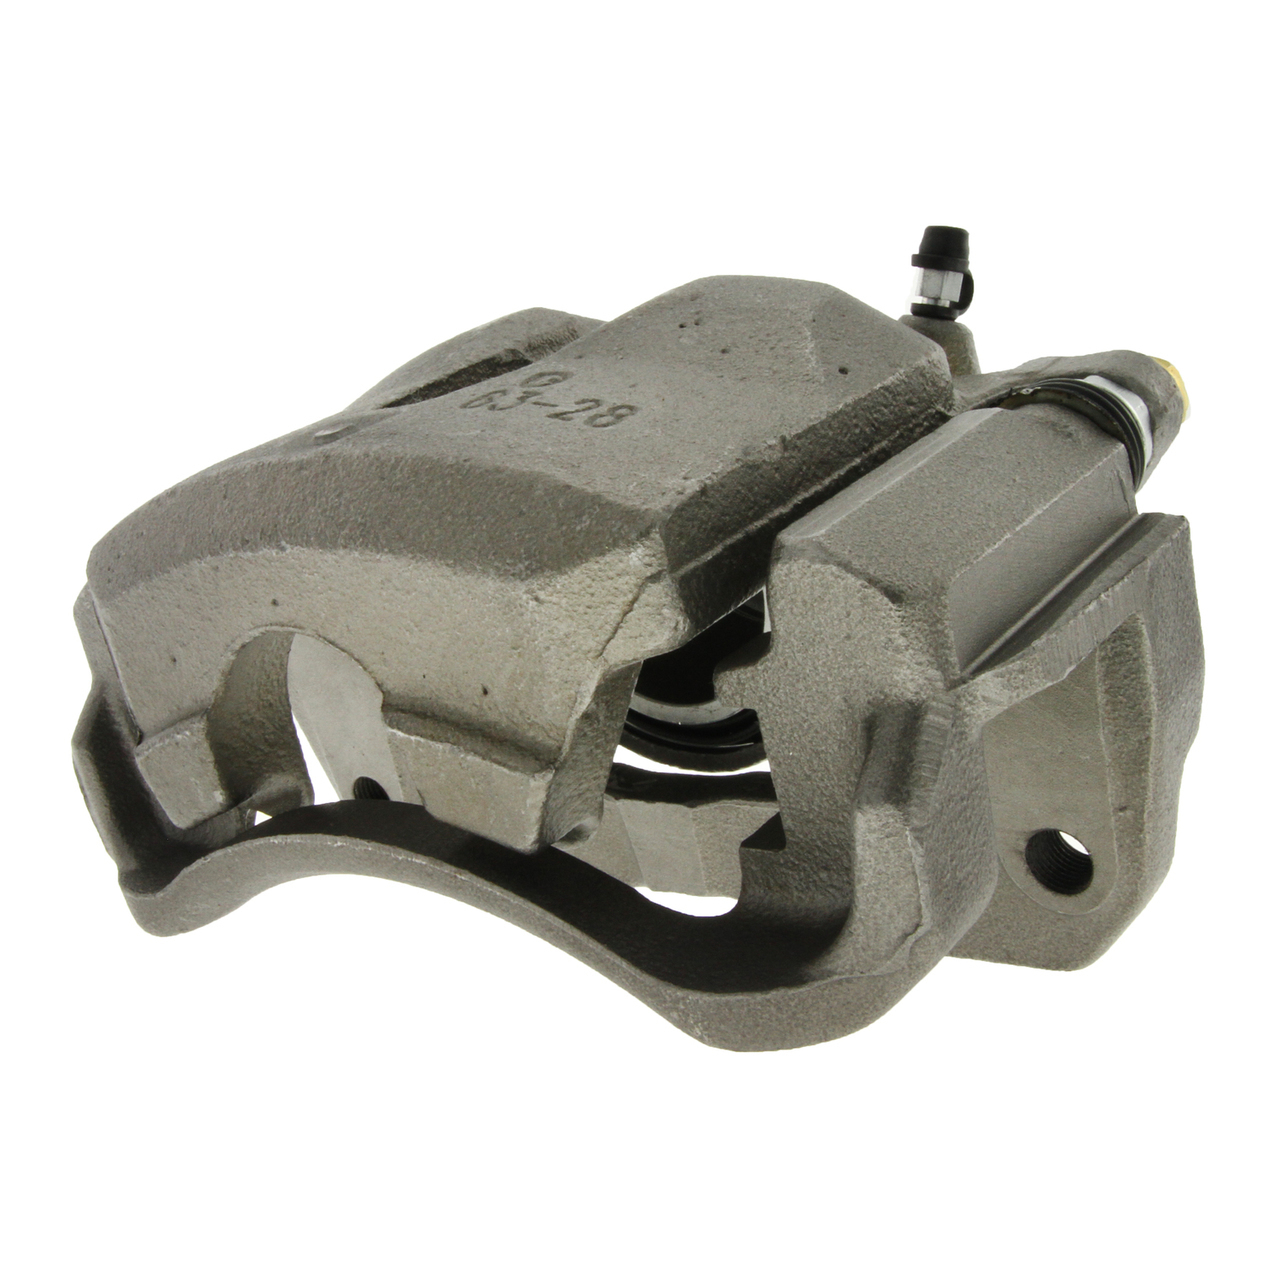 Centric 141 44210 Disc Brake Caliper for your 2002 Toyota Camry